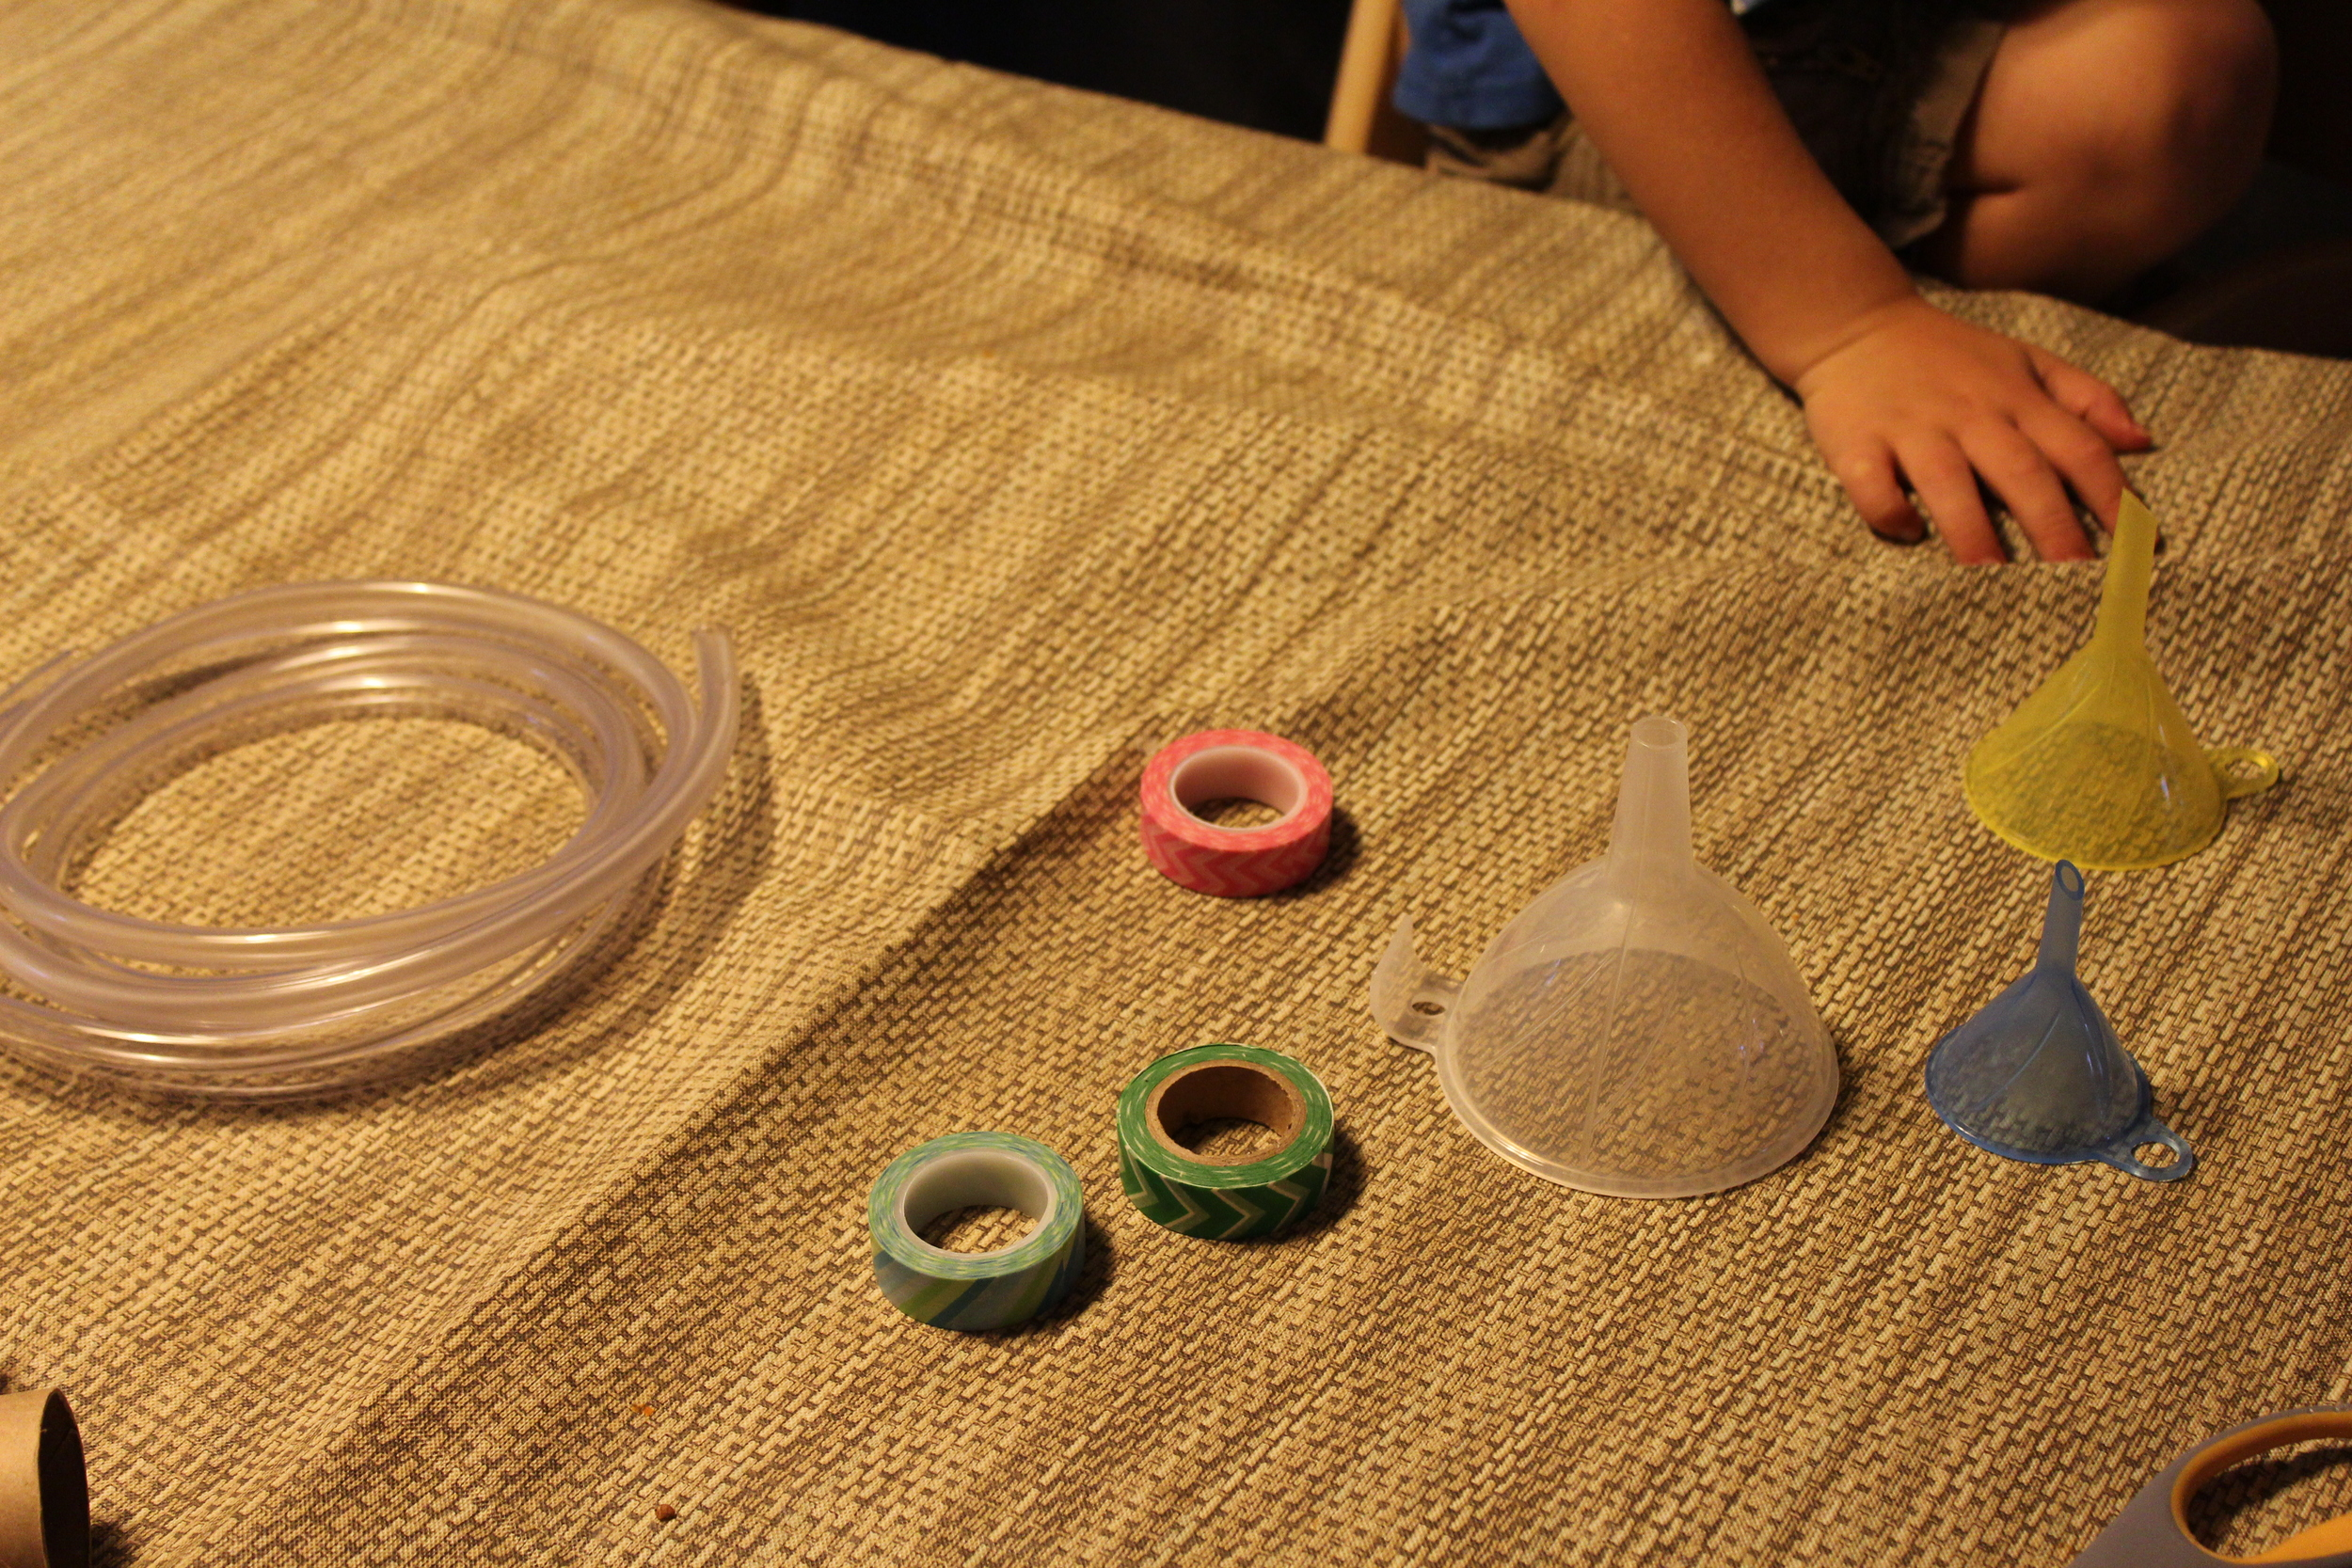 Our craft list included various sized funnels, plastic tubing, and washi tape for fun colors.